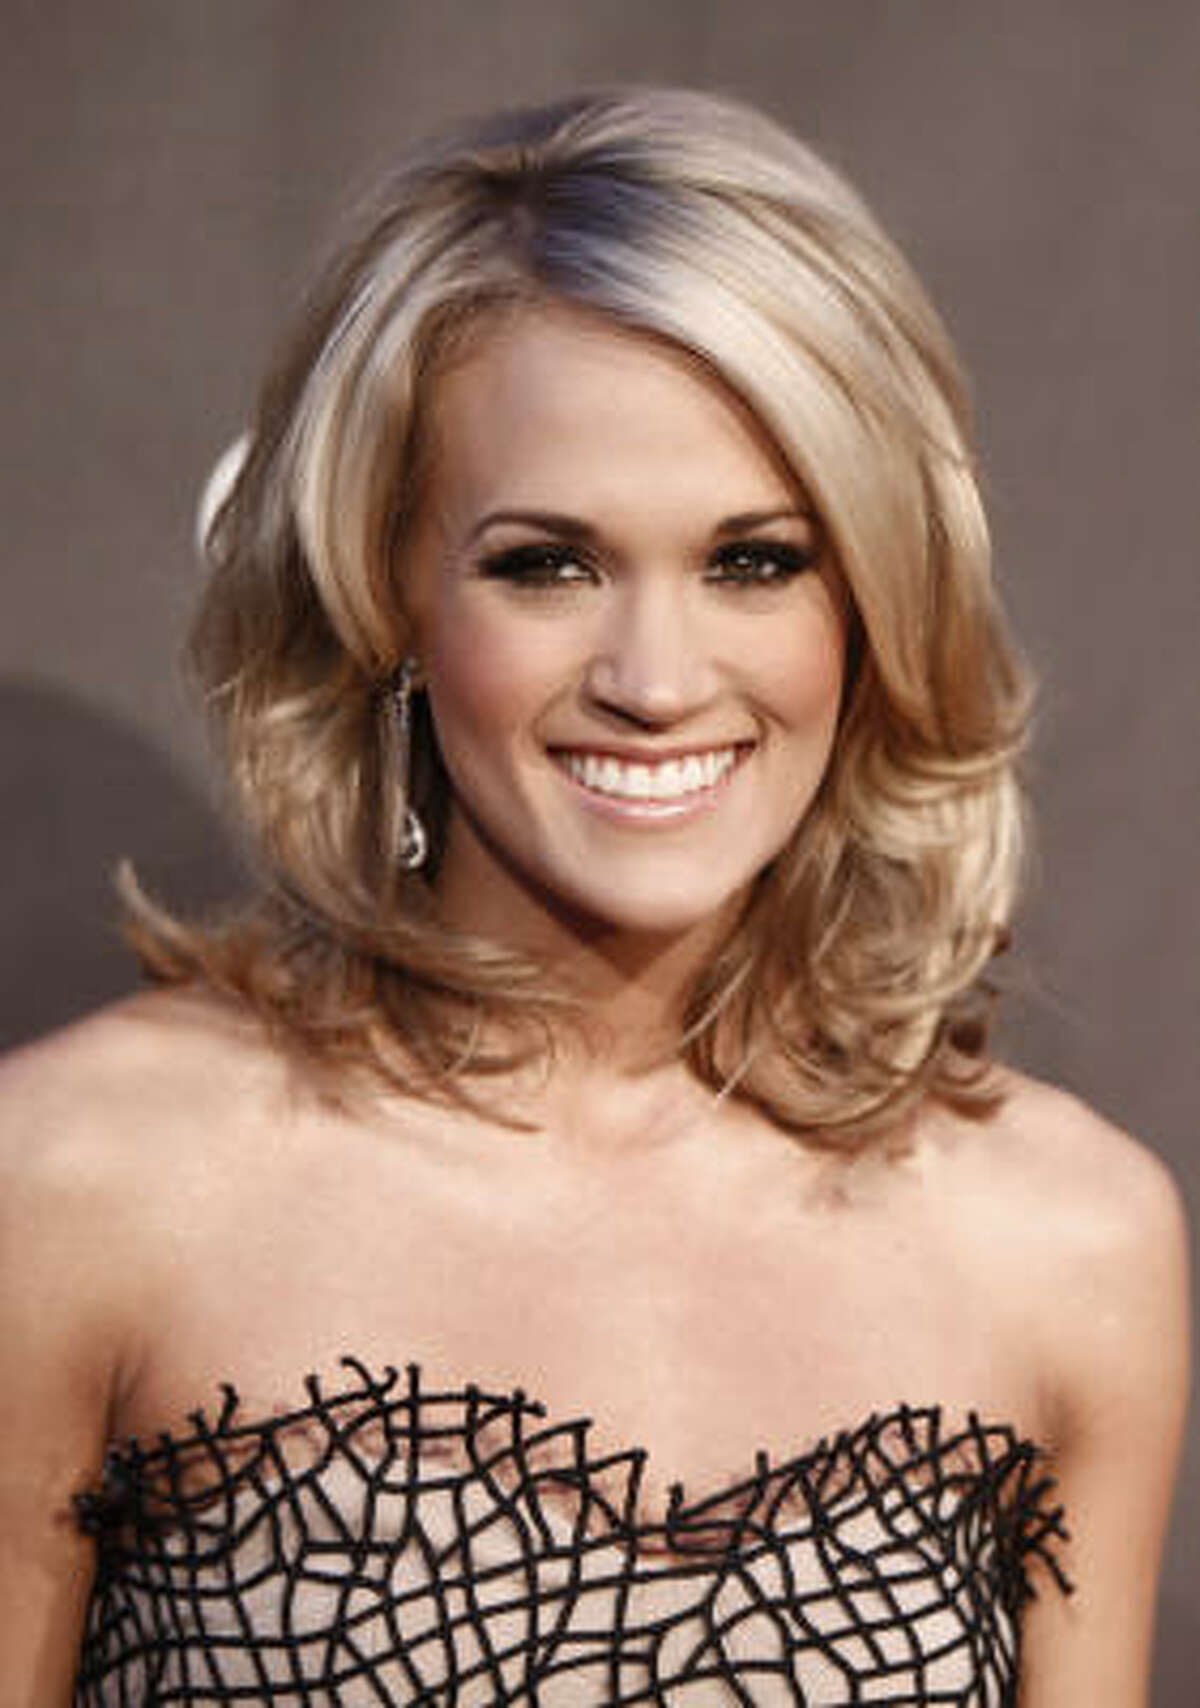 Favorite female artist Carrie Underwood